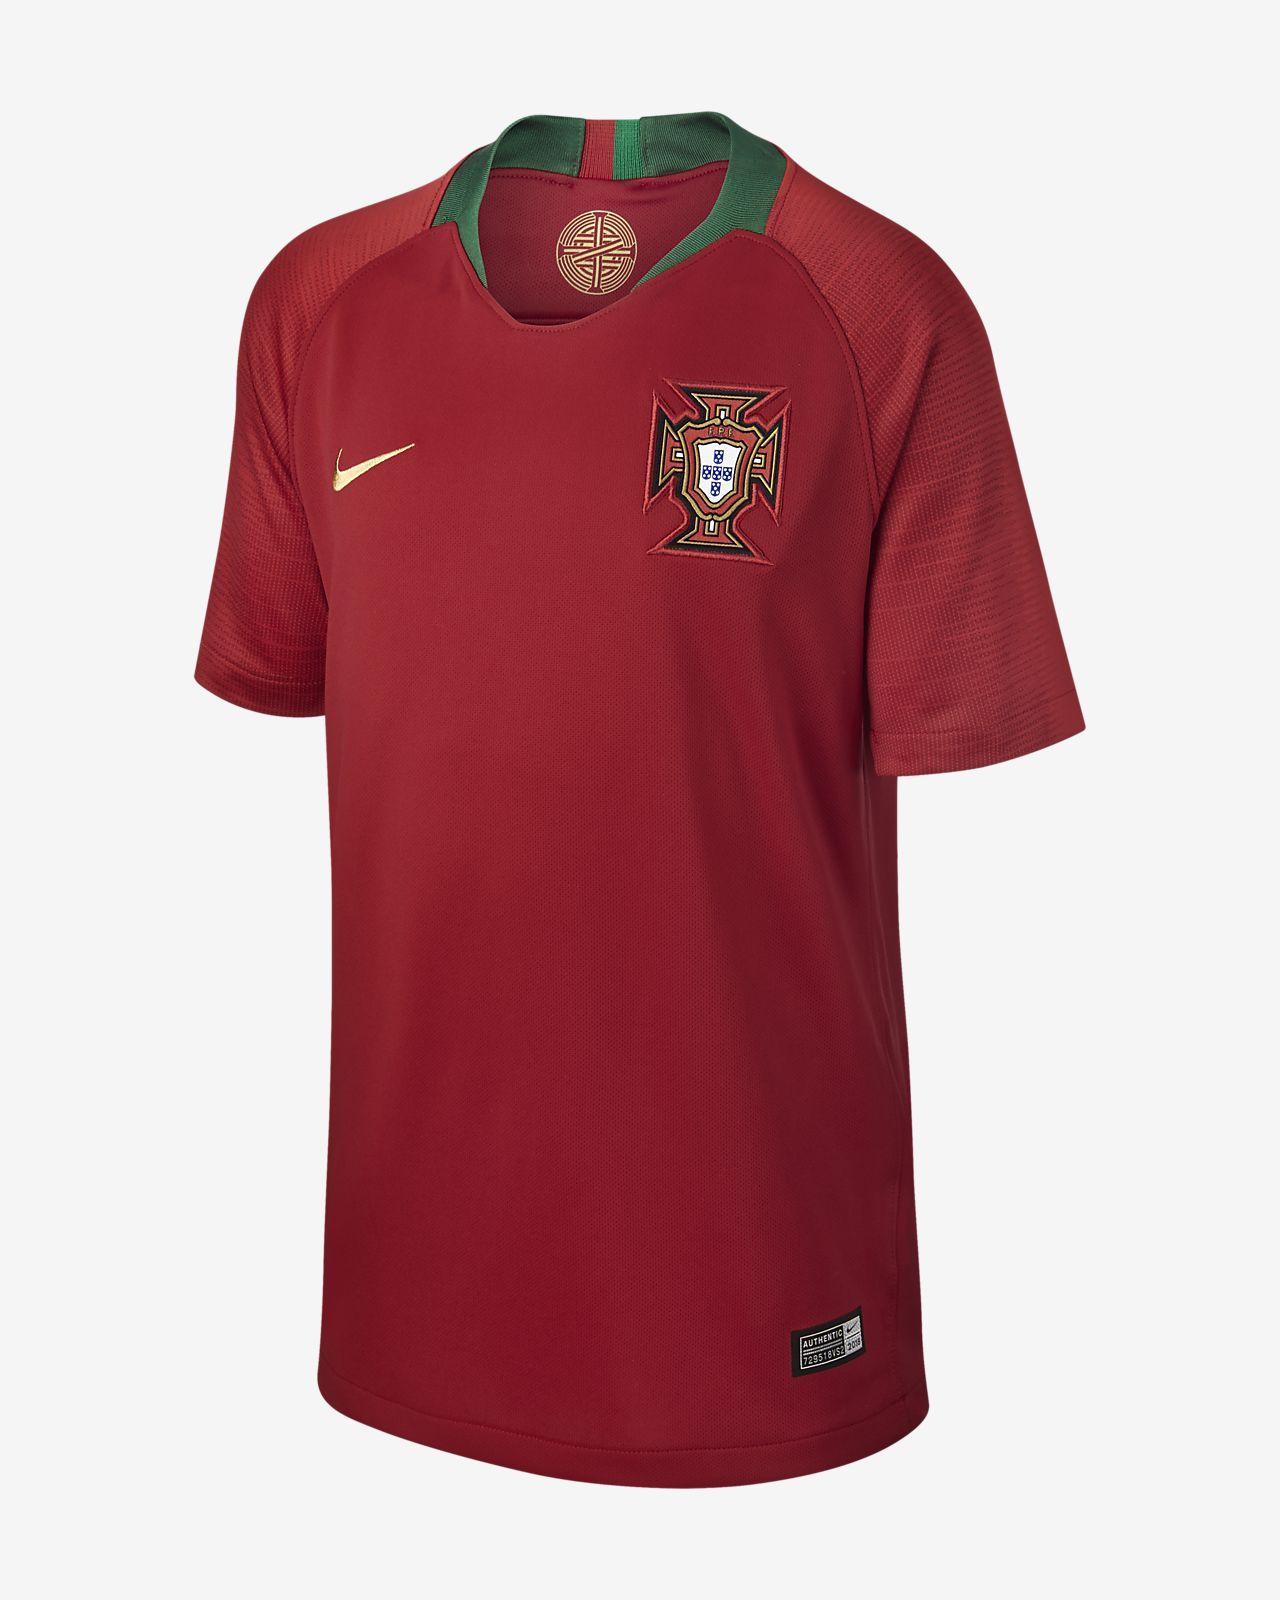 2018 Portugal Stadium Home Older Kids' Football Shirt